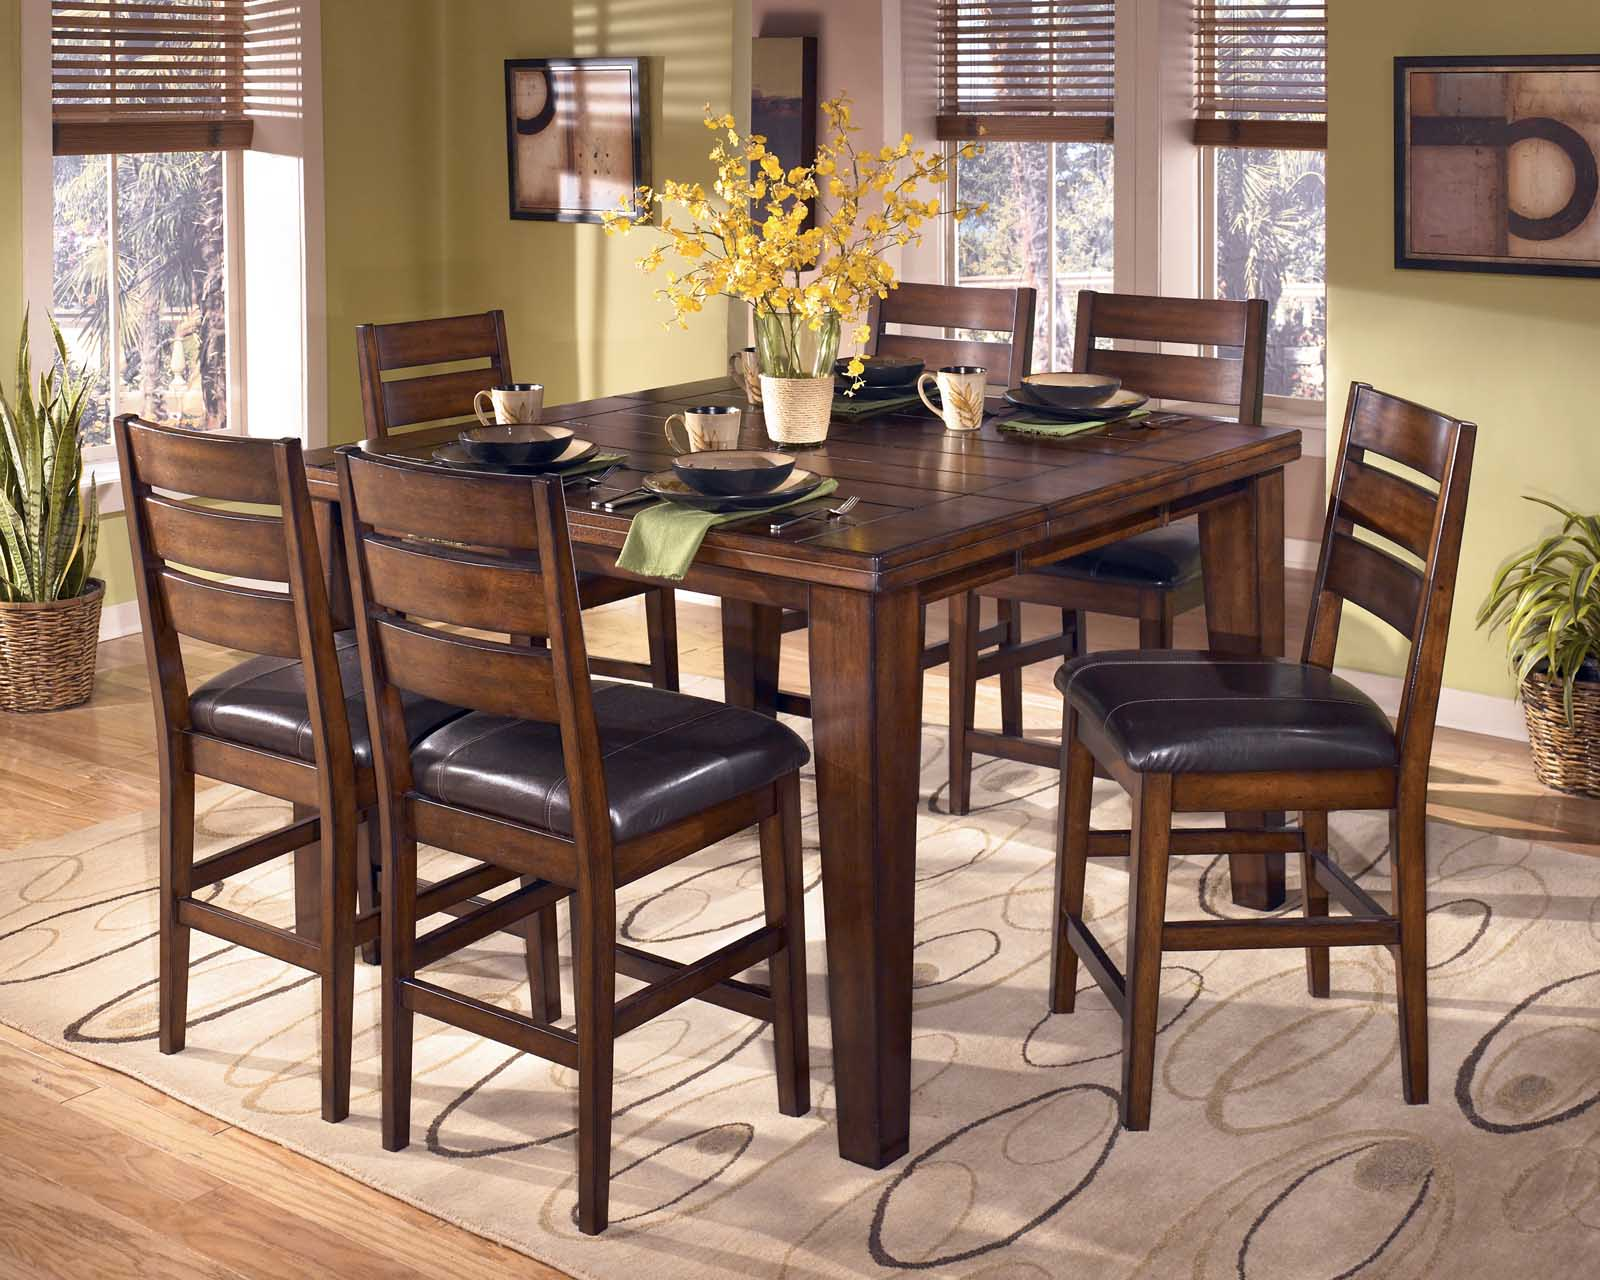 Counter Height Dining Table with Butterfly Leaf counter height dining sets butterfly leaf ECKUPTT